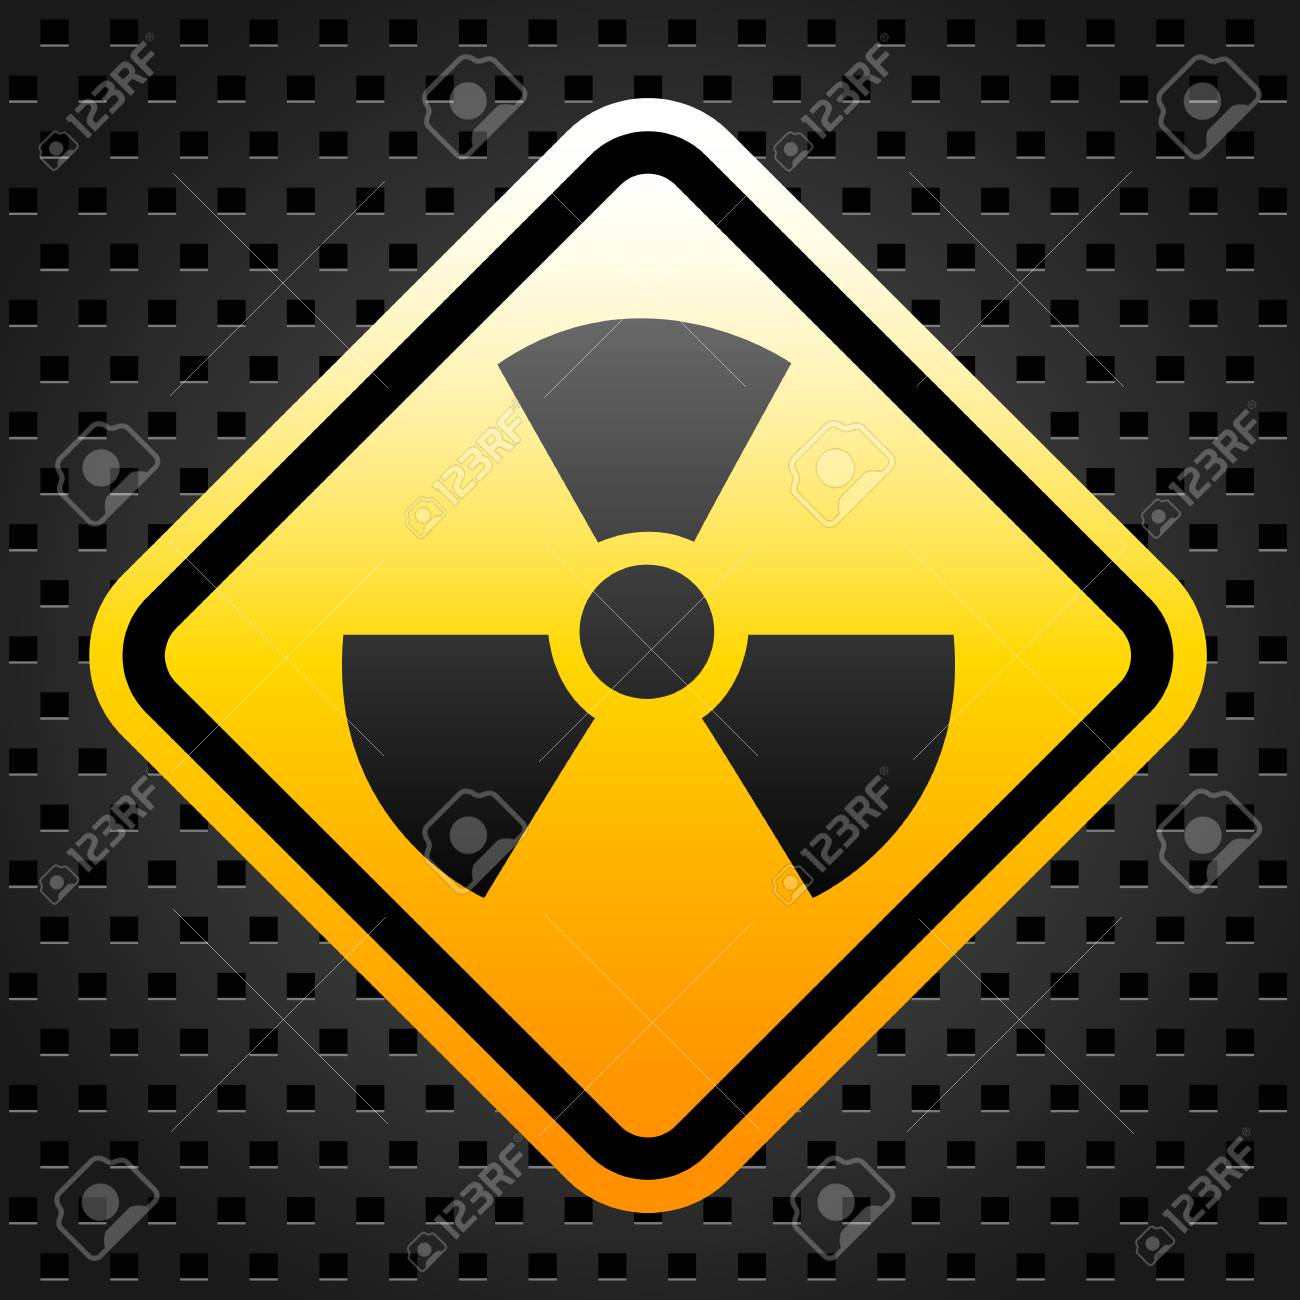 Radiation warning sign Stock Vector - 27246853